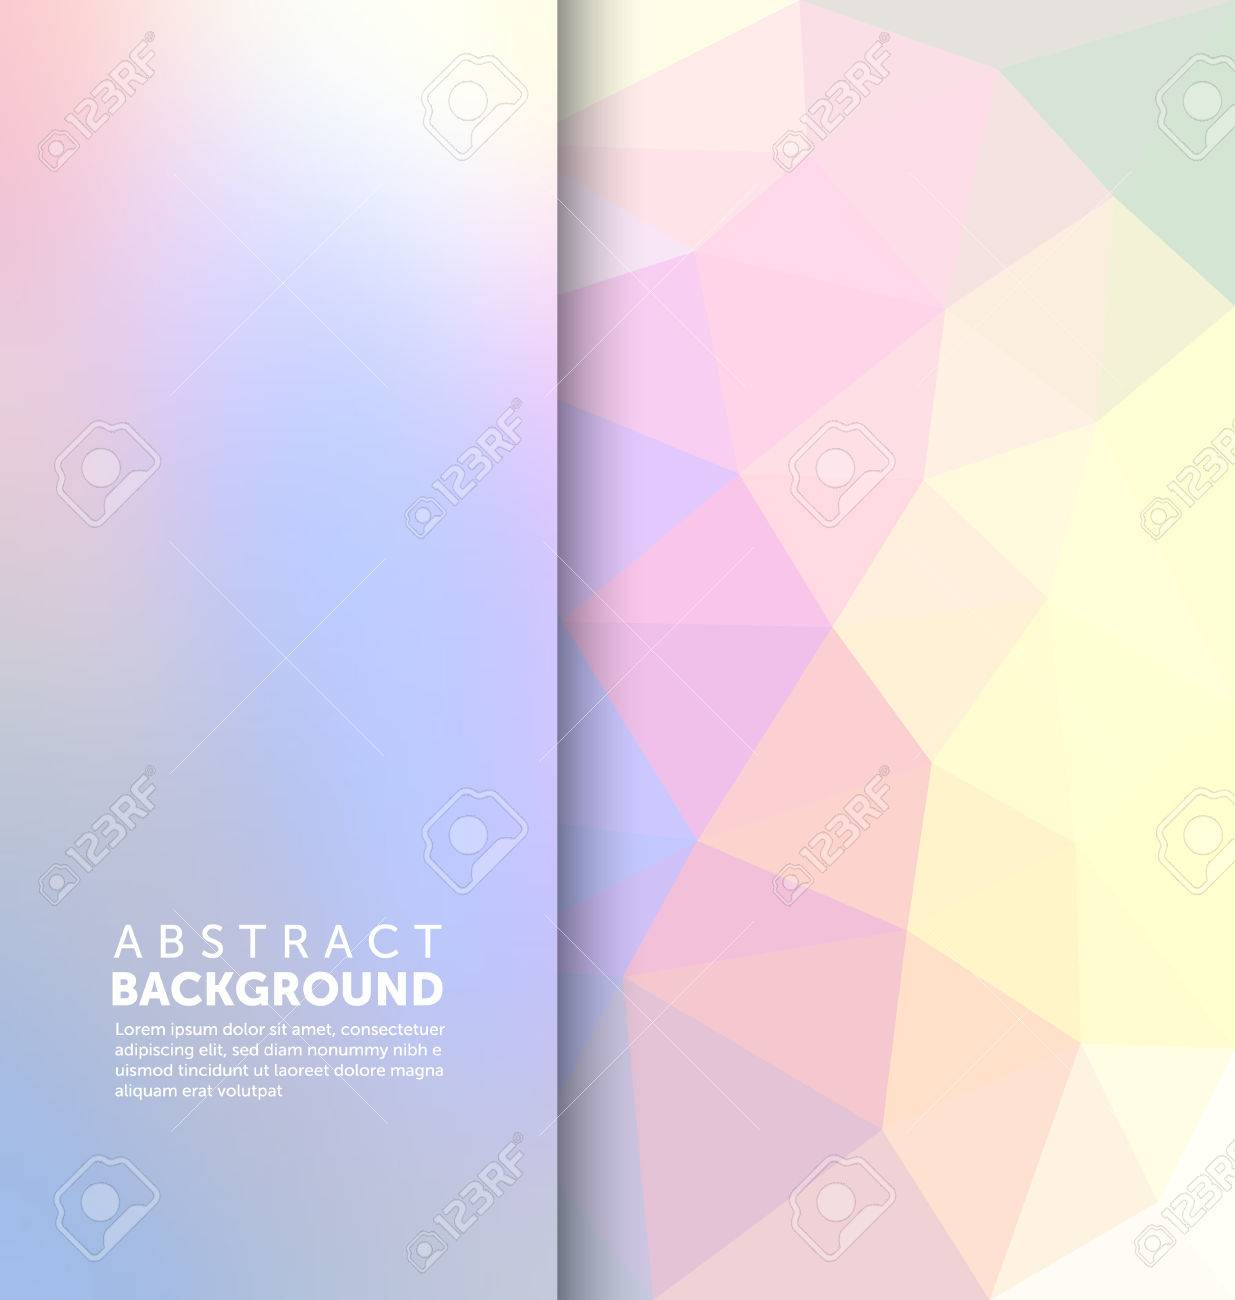 Abstract Background - Triangle and blurred banner design - 45168346